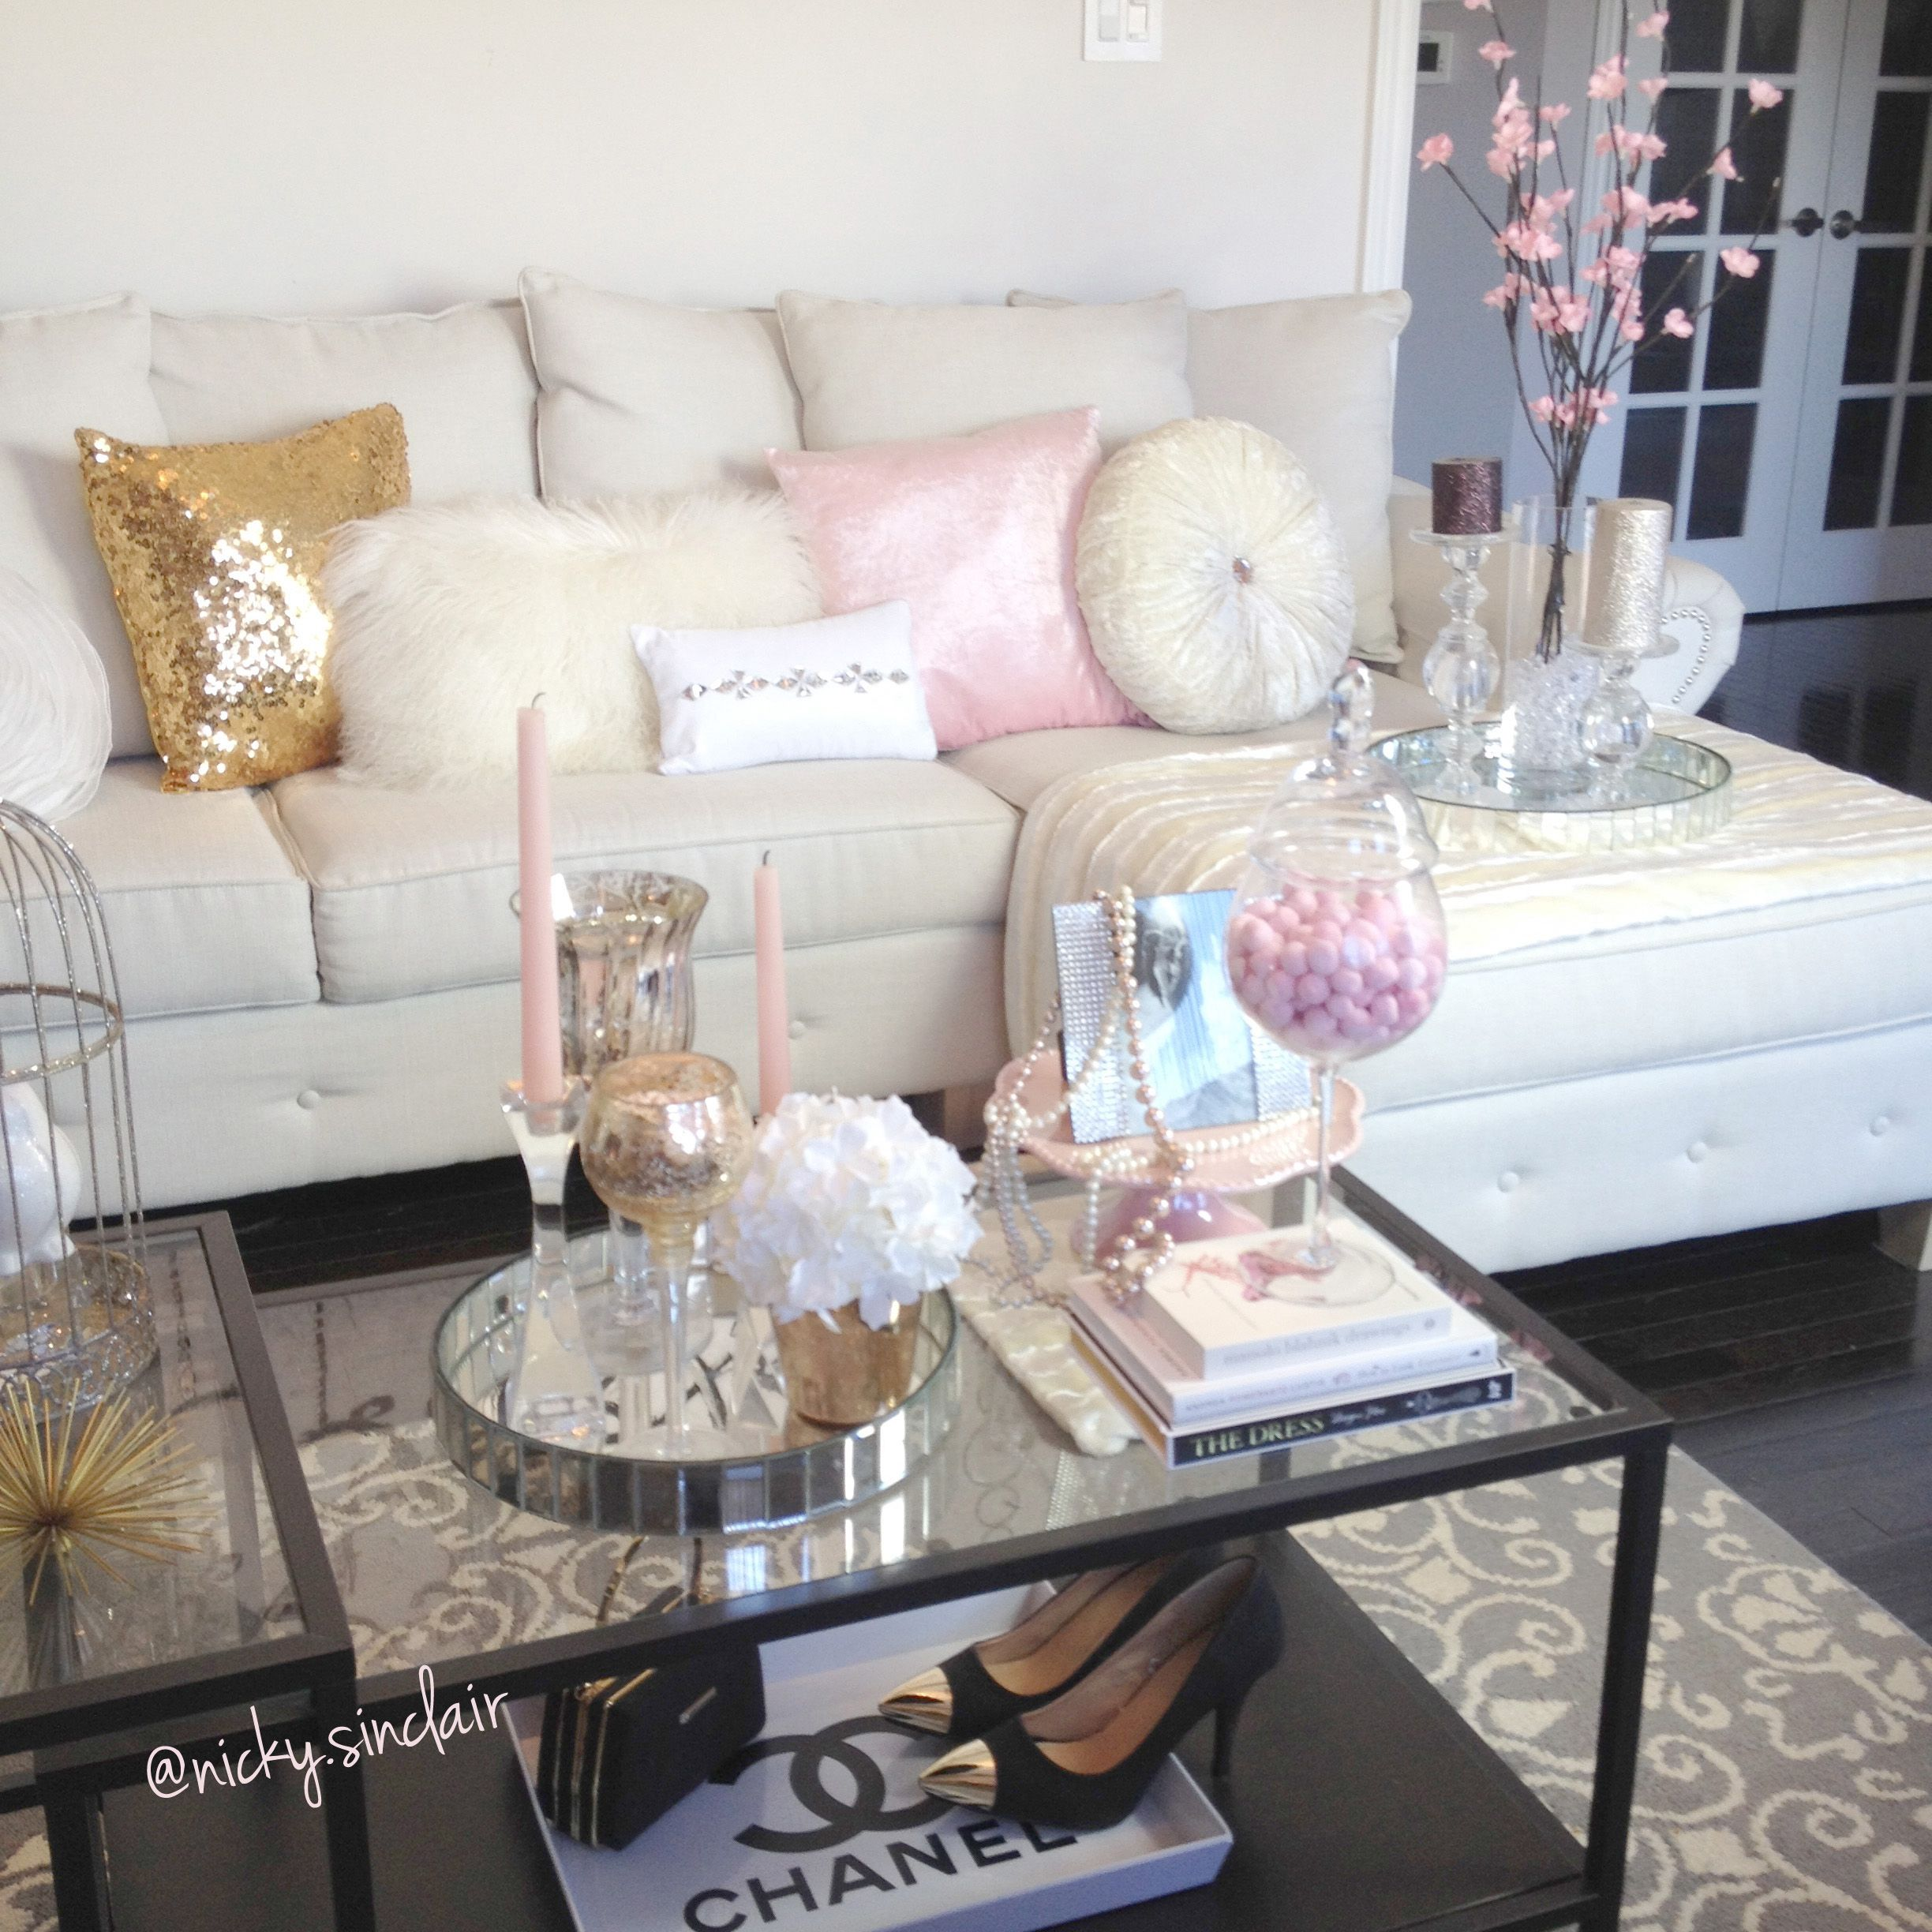 Wohnzimmer Deko Ideen Instagram Feminine Glam Living Room Via Ig Nicky Sinclair